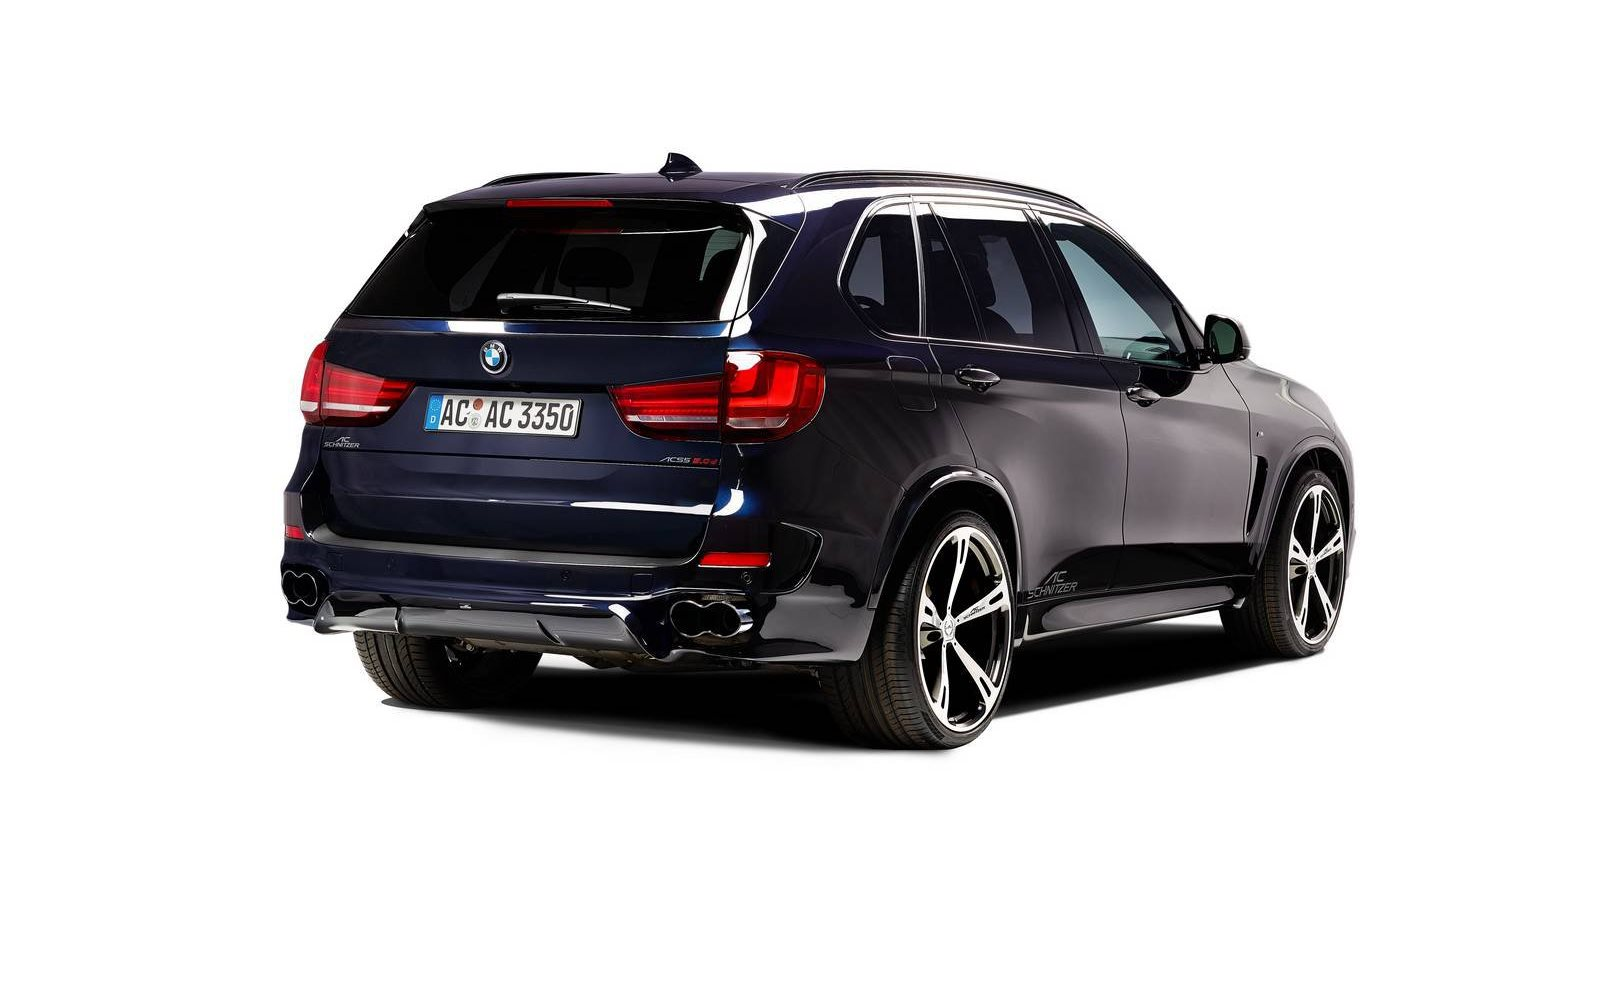 http://www.autoblog.gr/wp-content/gallery/bmw-x5-m50d-by-ac-schnitzer/bmw-x5-m50d-by-ac-schnitzer-4.jpg